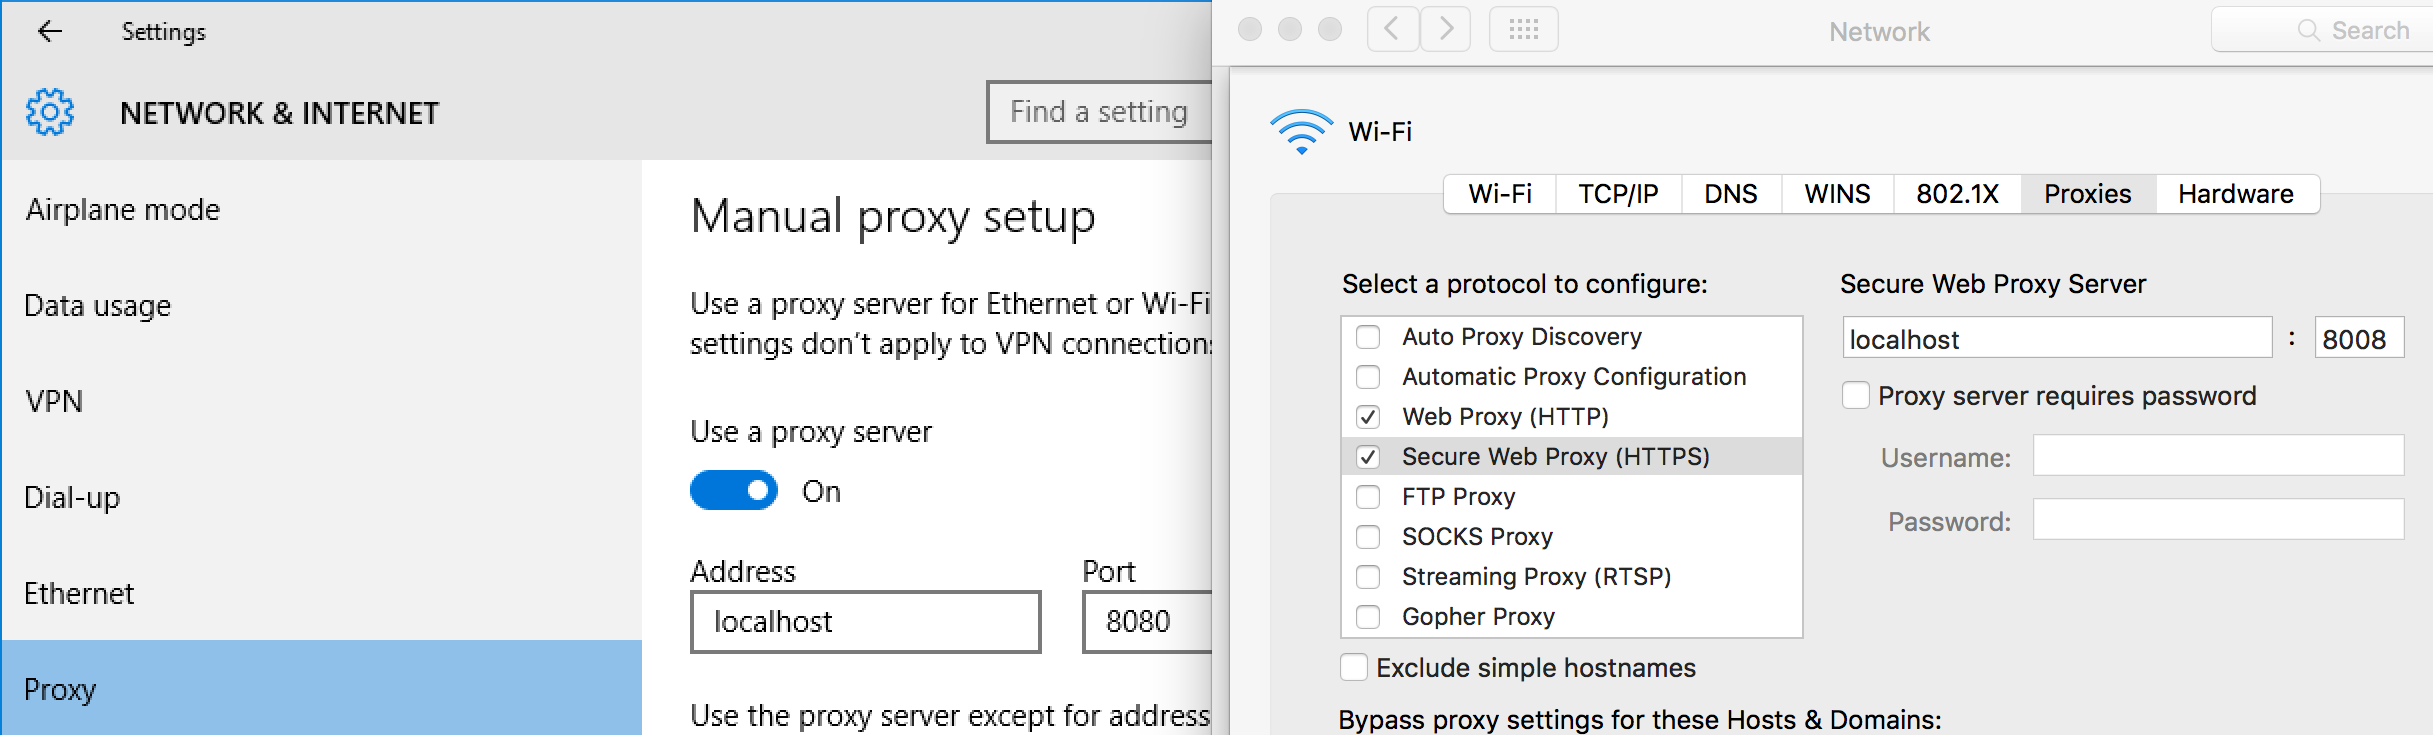 Setting up proxy on Windows 10 and OS X